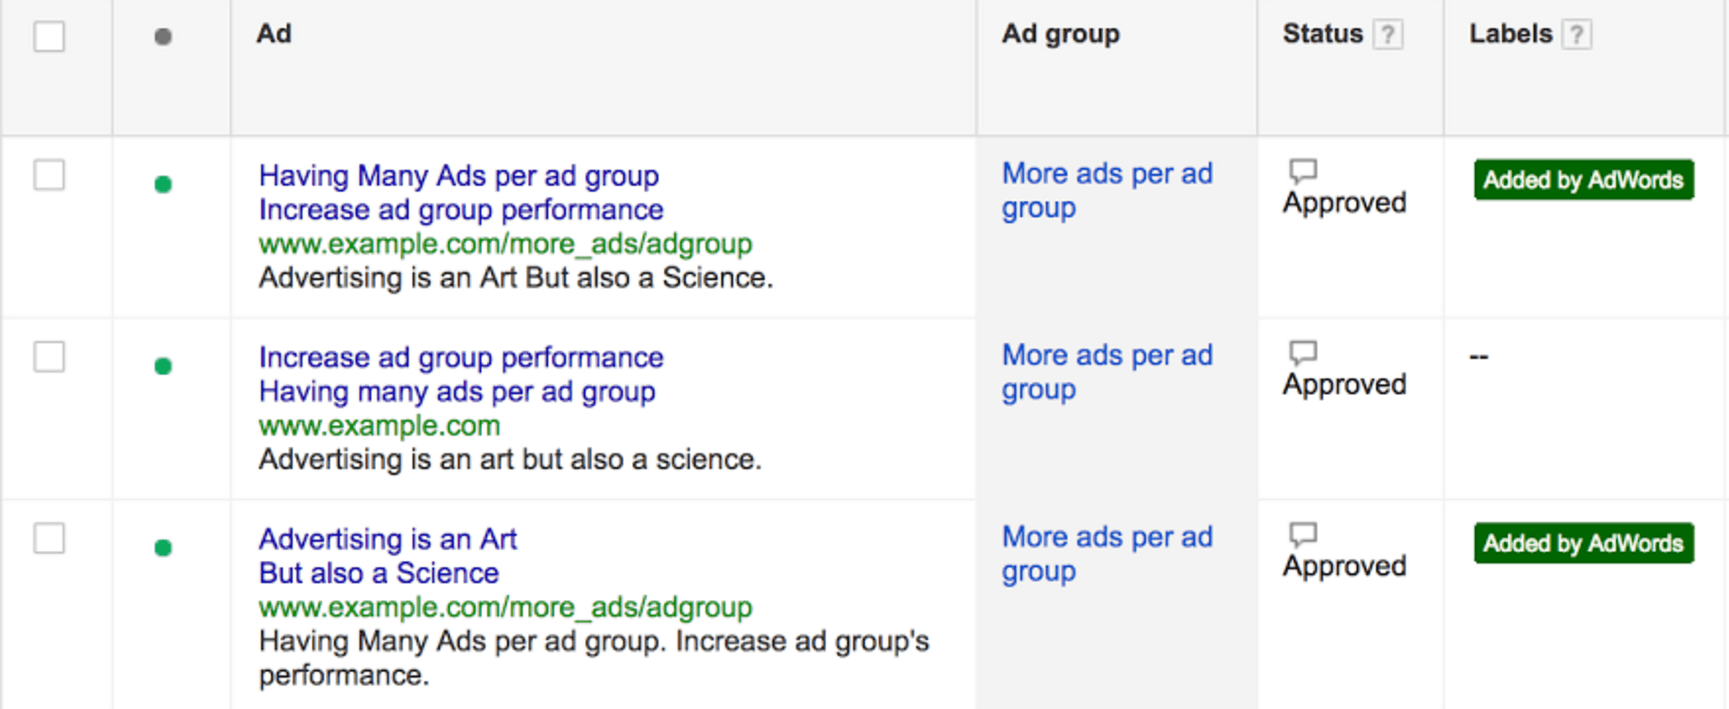 ads-added-by-adwords.png